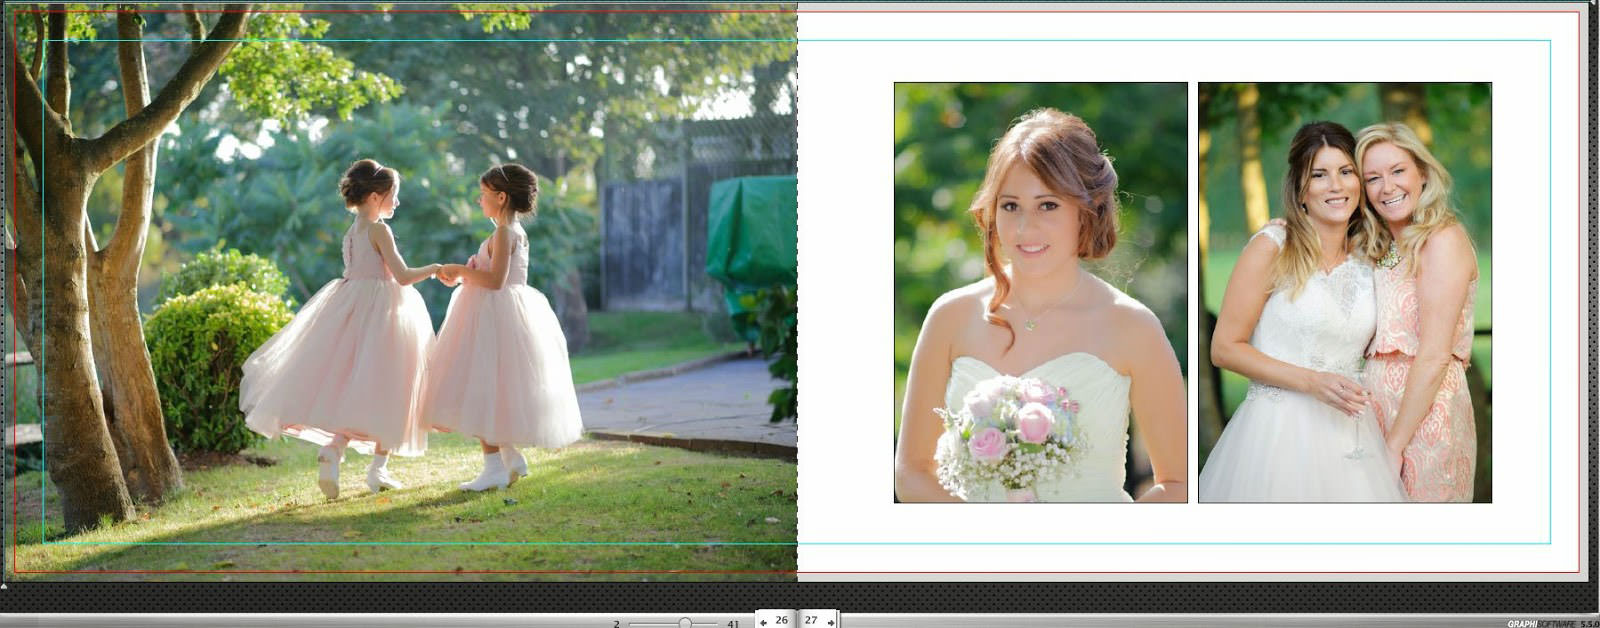 ali-gaudion-chichester-wedding-photographer-graphistudio-wedding-album-design-012